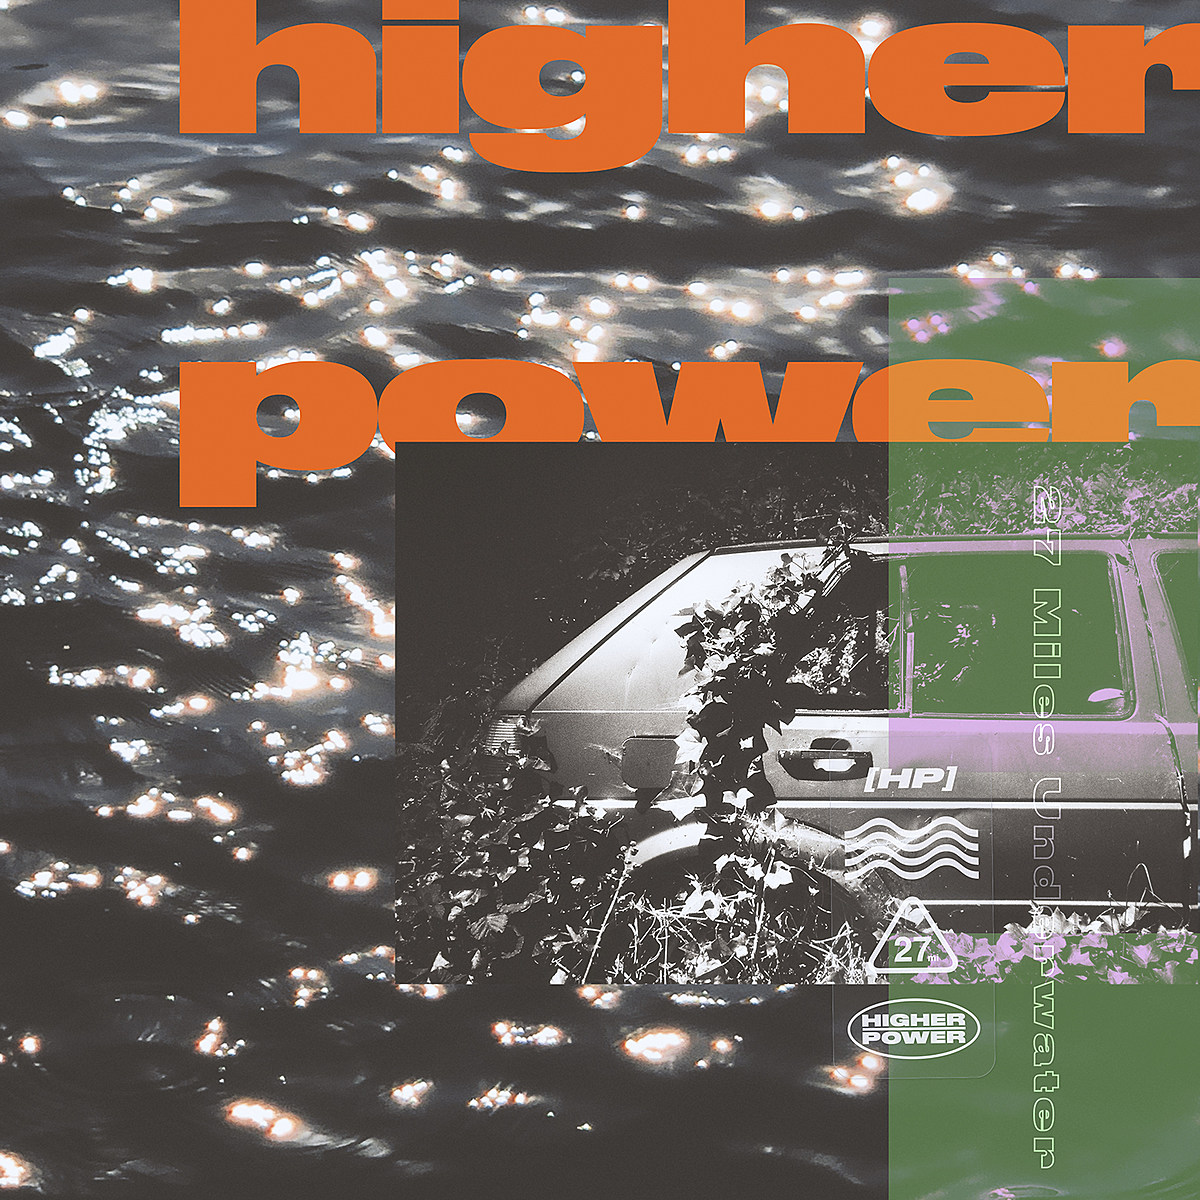 UK punks Higher Power made the first great rock album of 2020